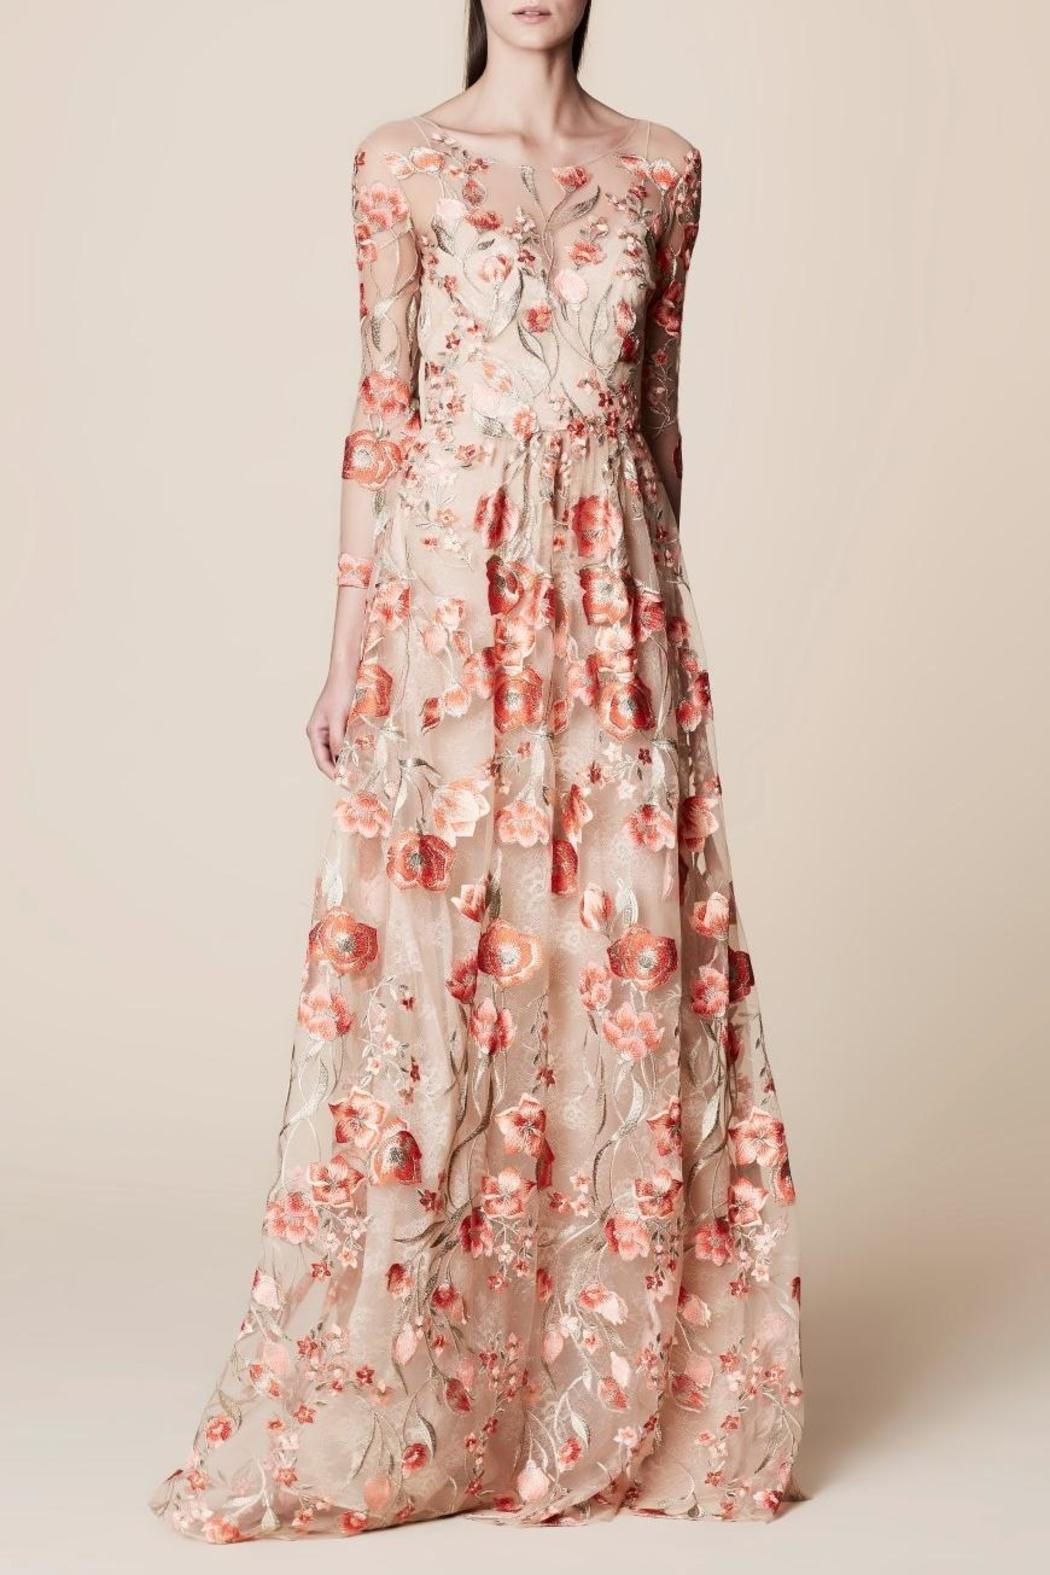 764d146bd25 Marchesa Floral Embroidered Gown from New Jersey by District 5 ...